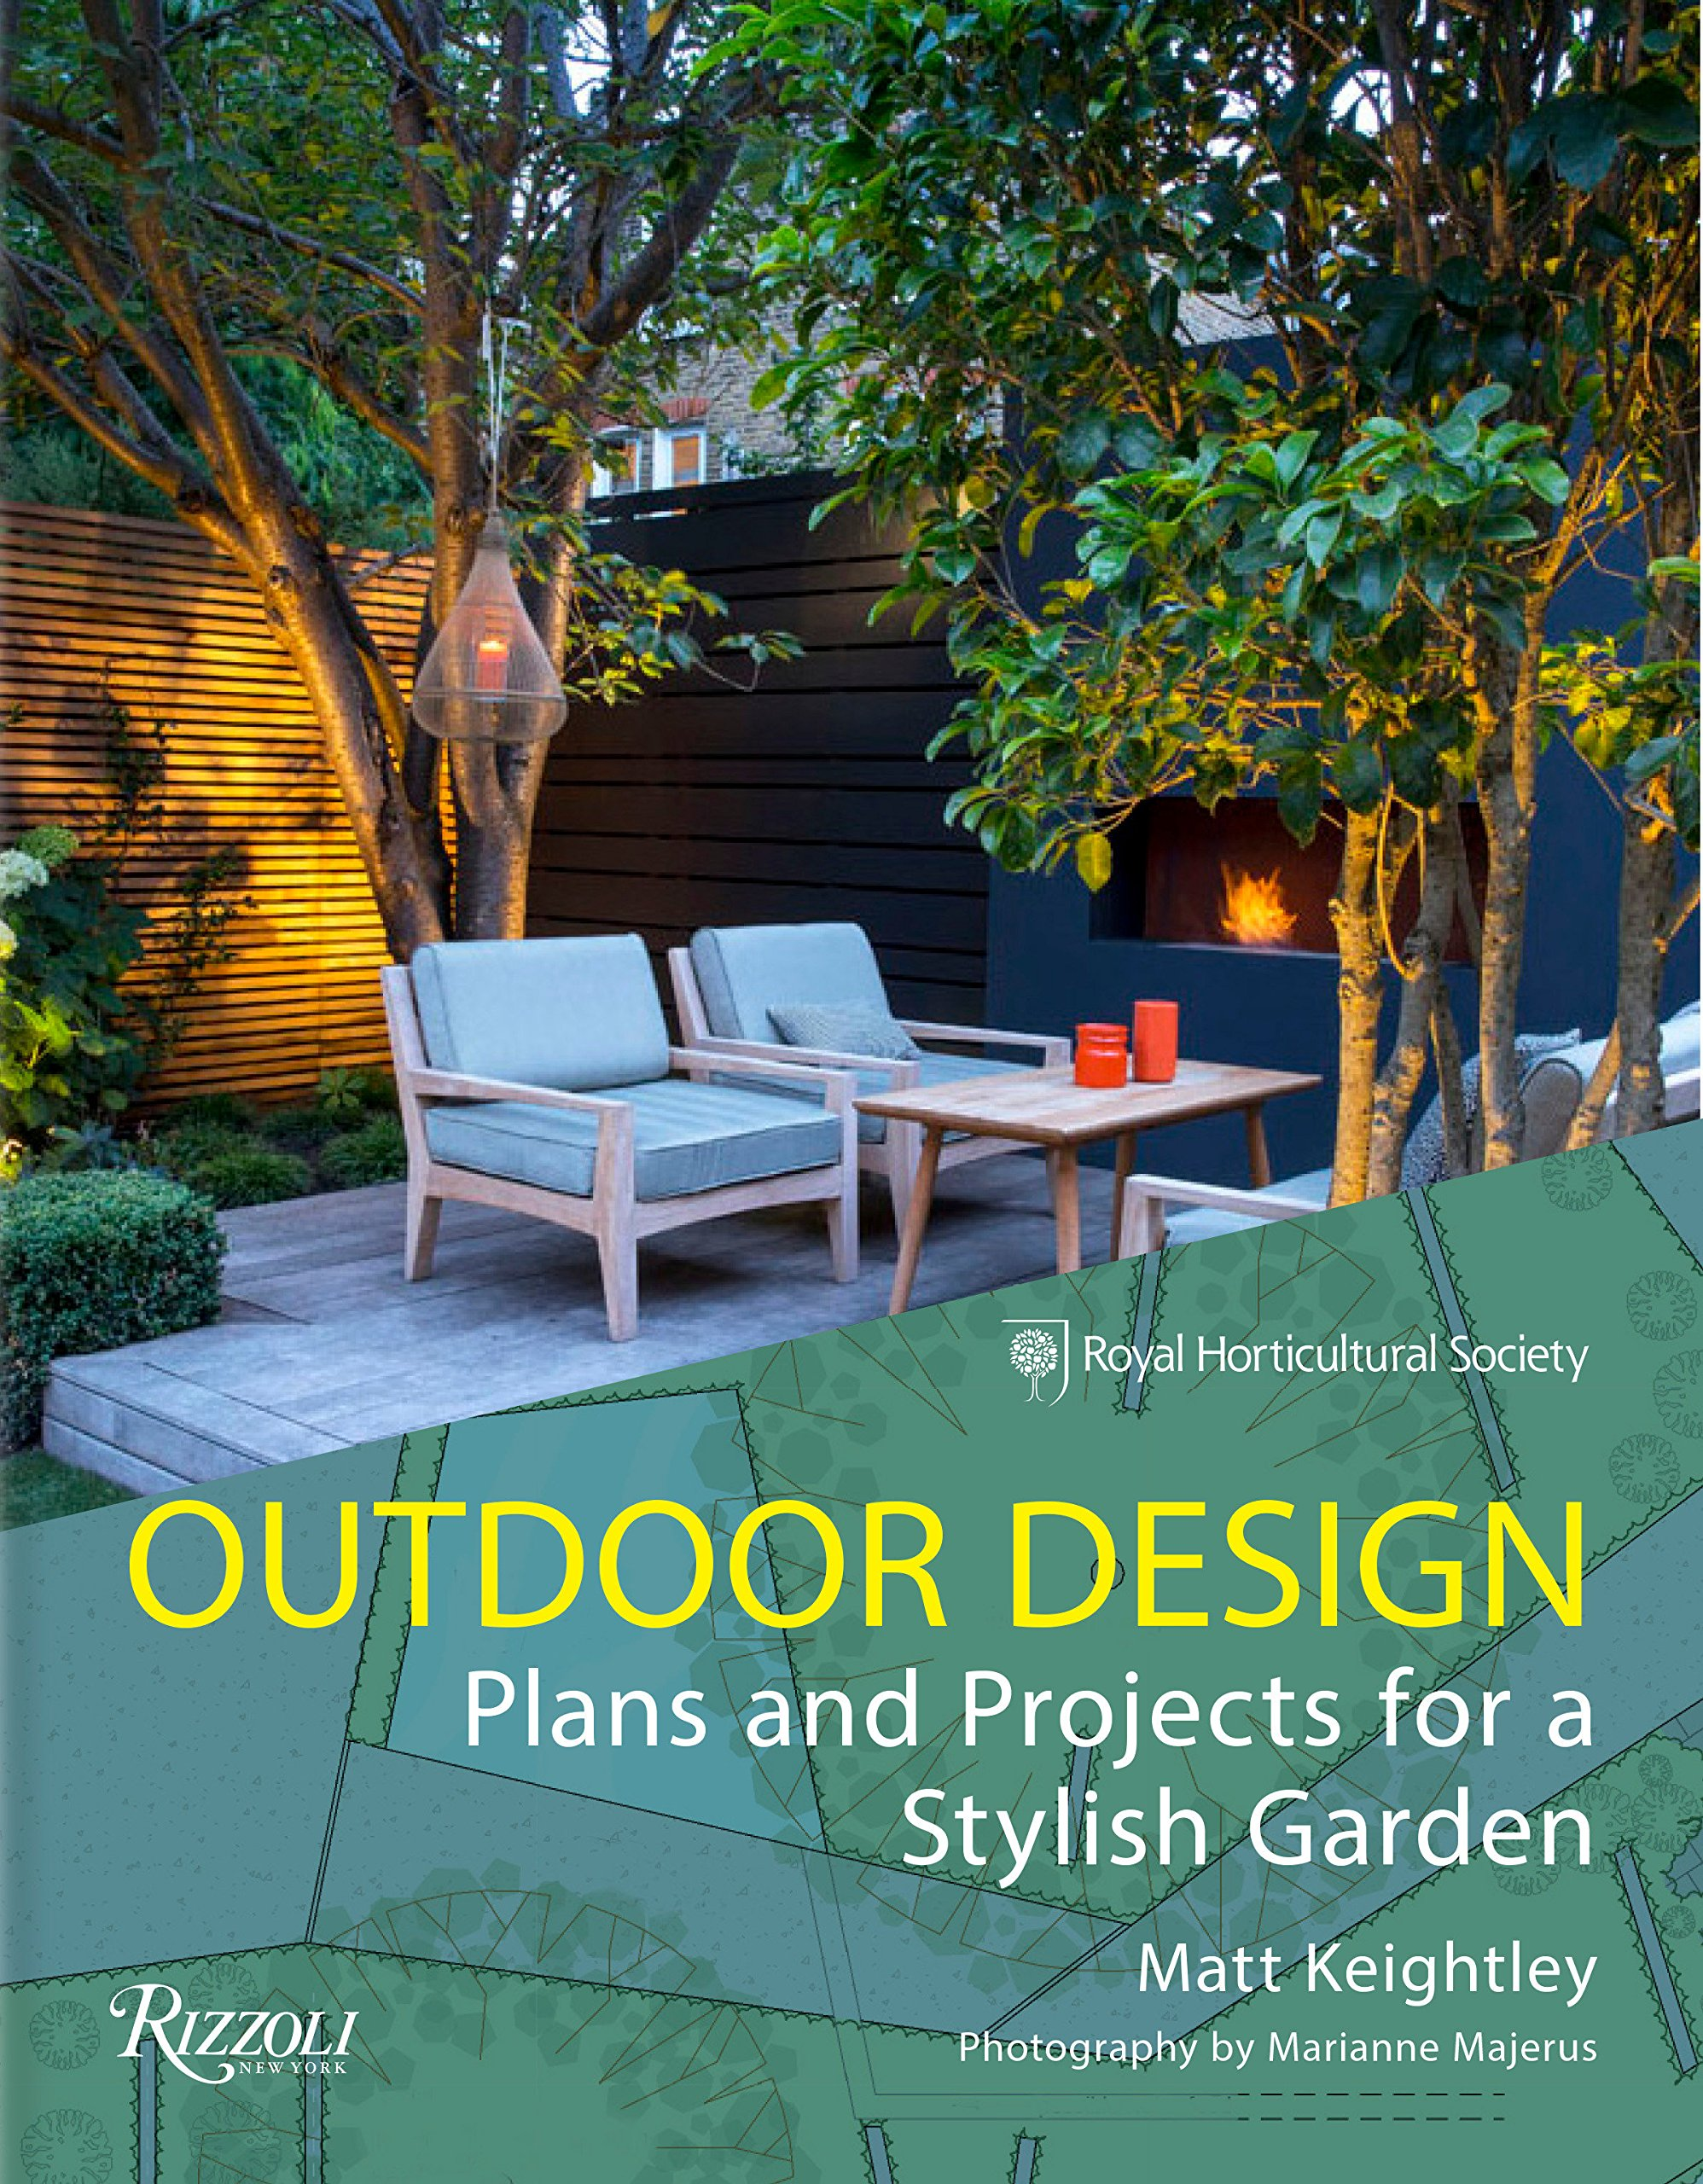 Outdoor Design: Plans and Projects for a Stylish Garden